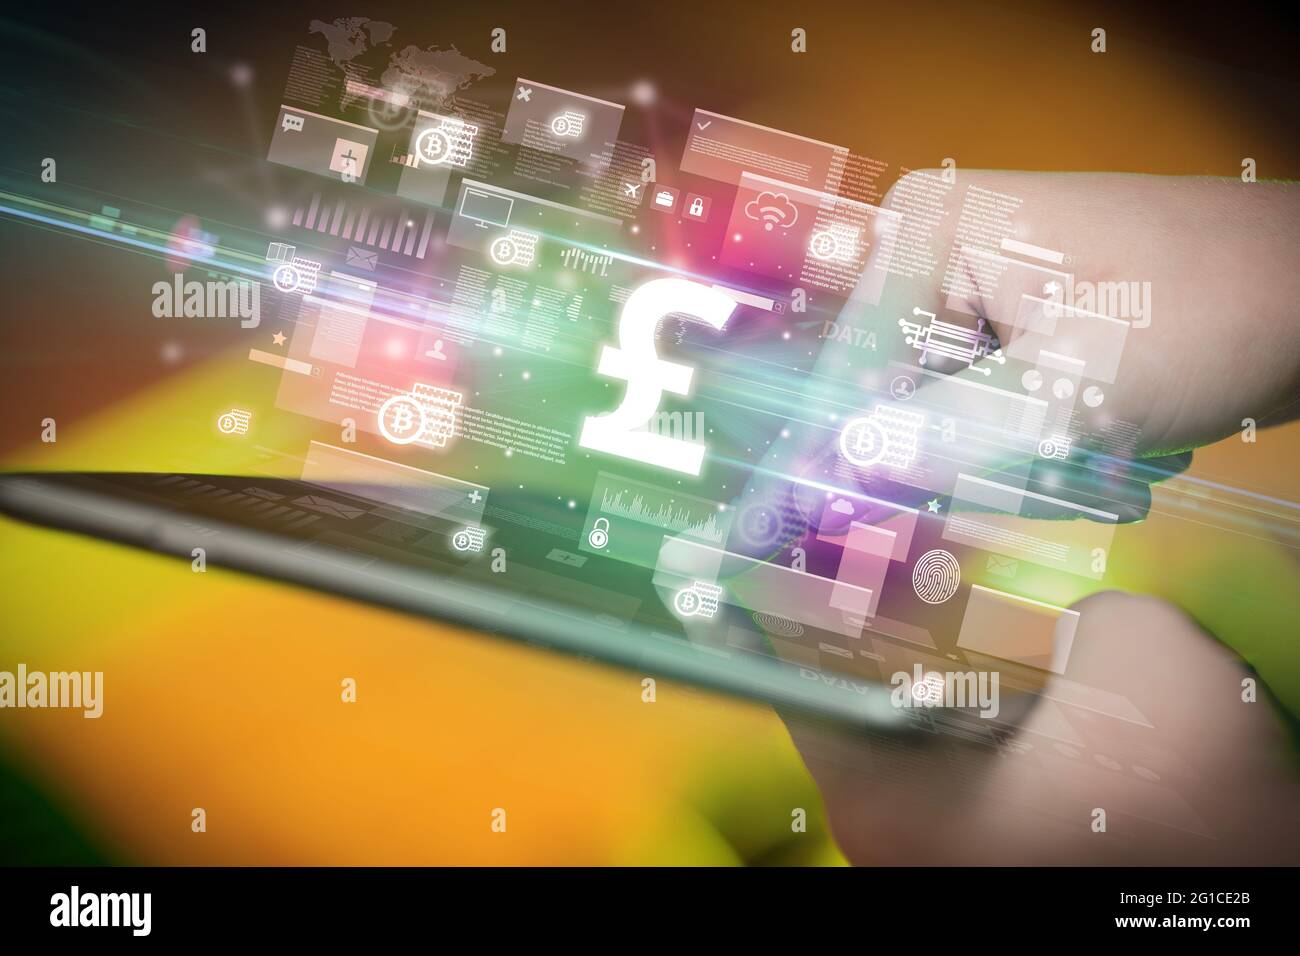 Close-up of a hand using tablet, currency concept Stock Photo